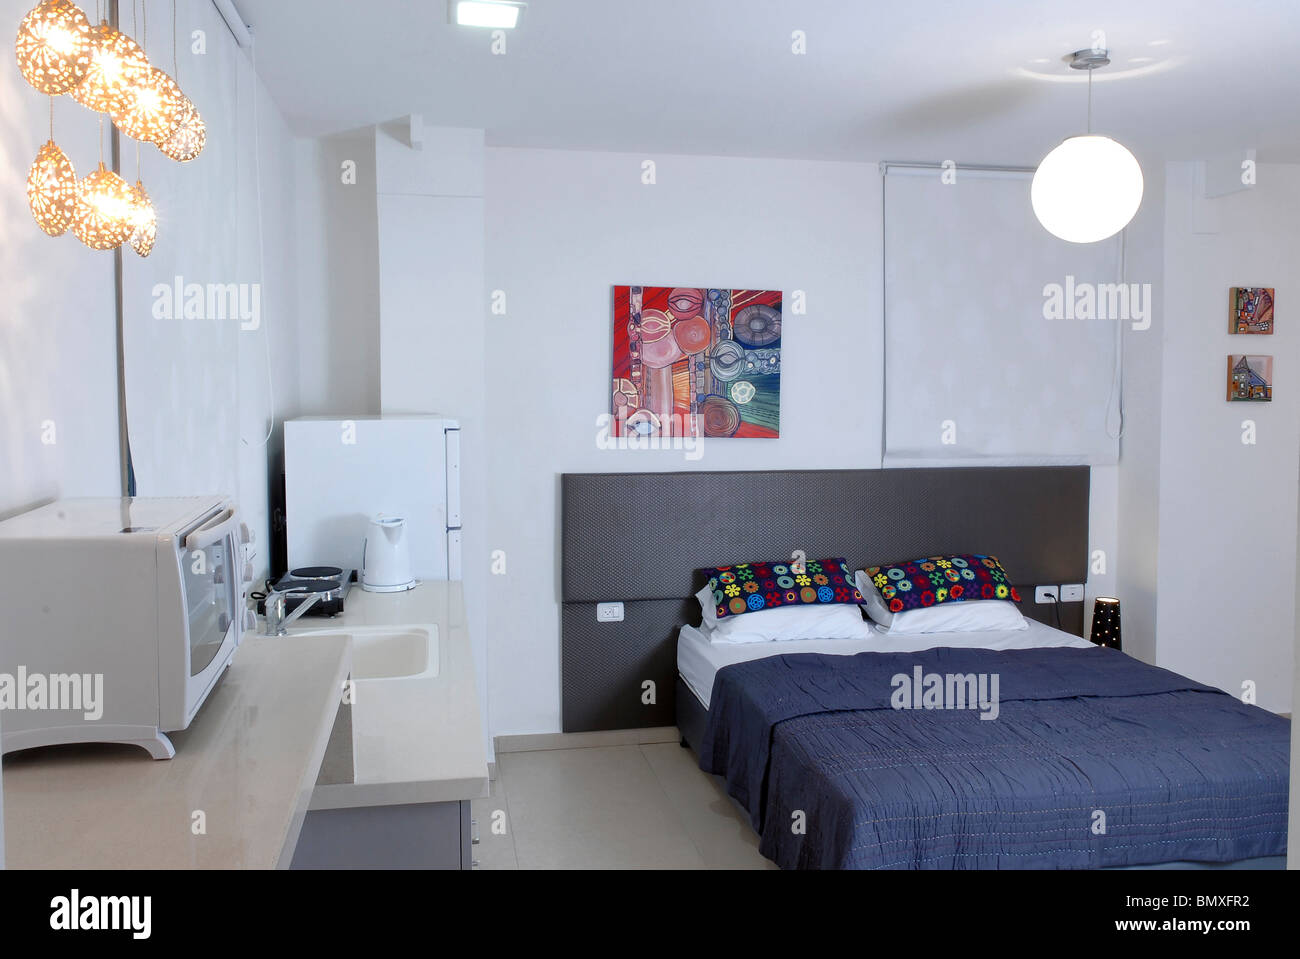 One Room Studio Apartment With Bed And Kitchenette In View Stock Photo Alamy